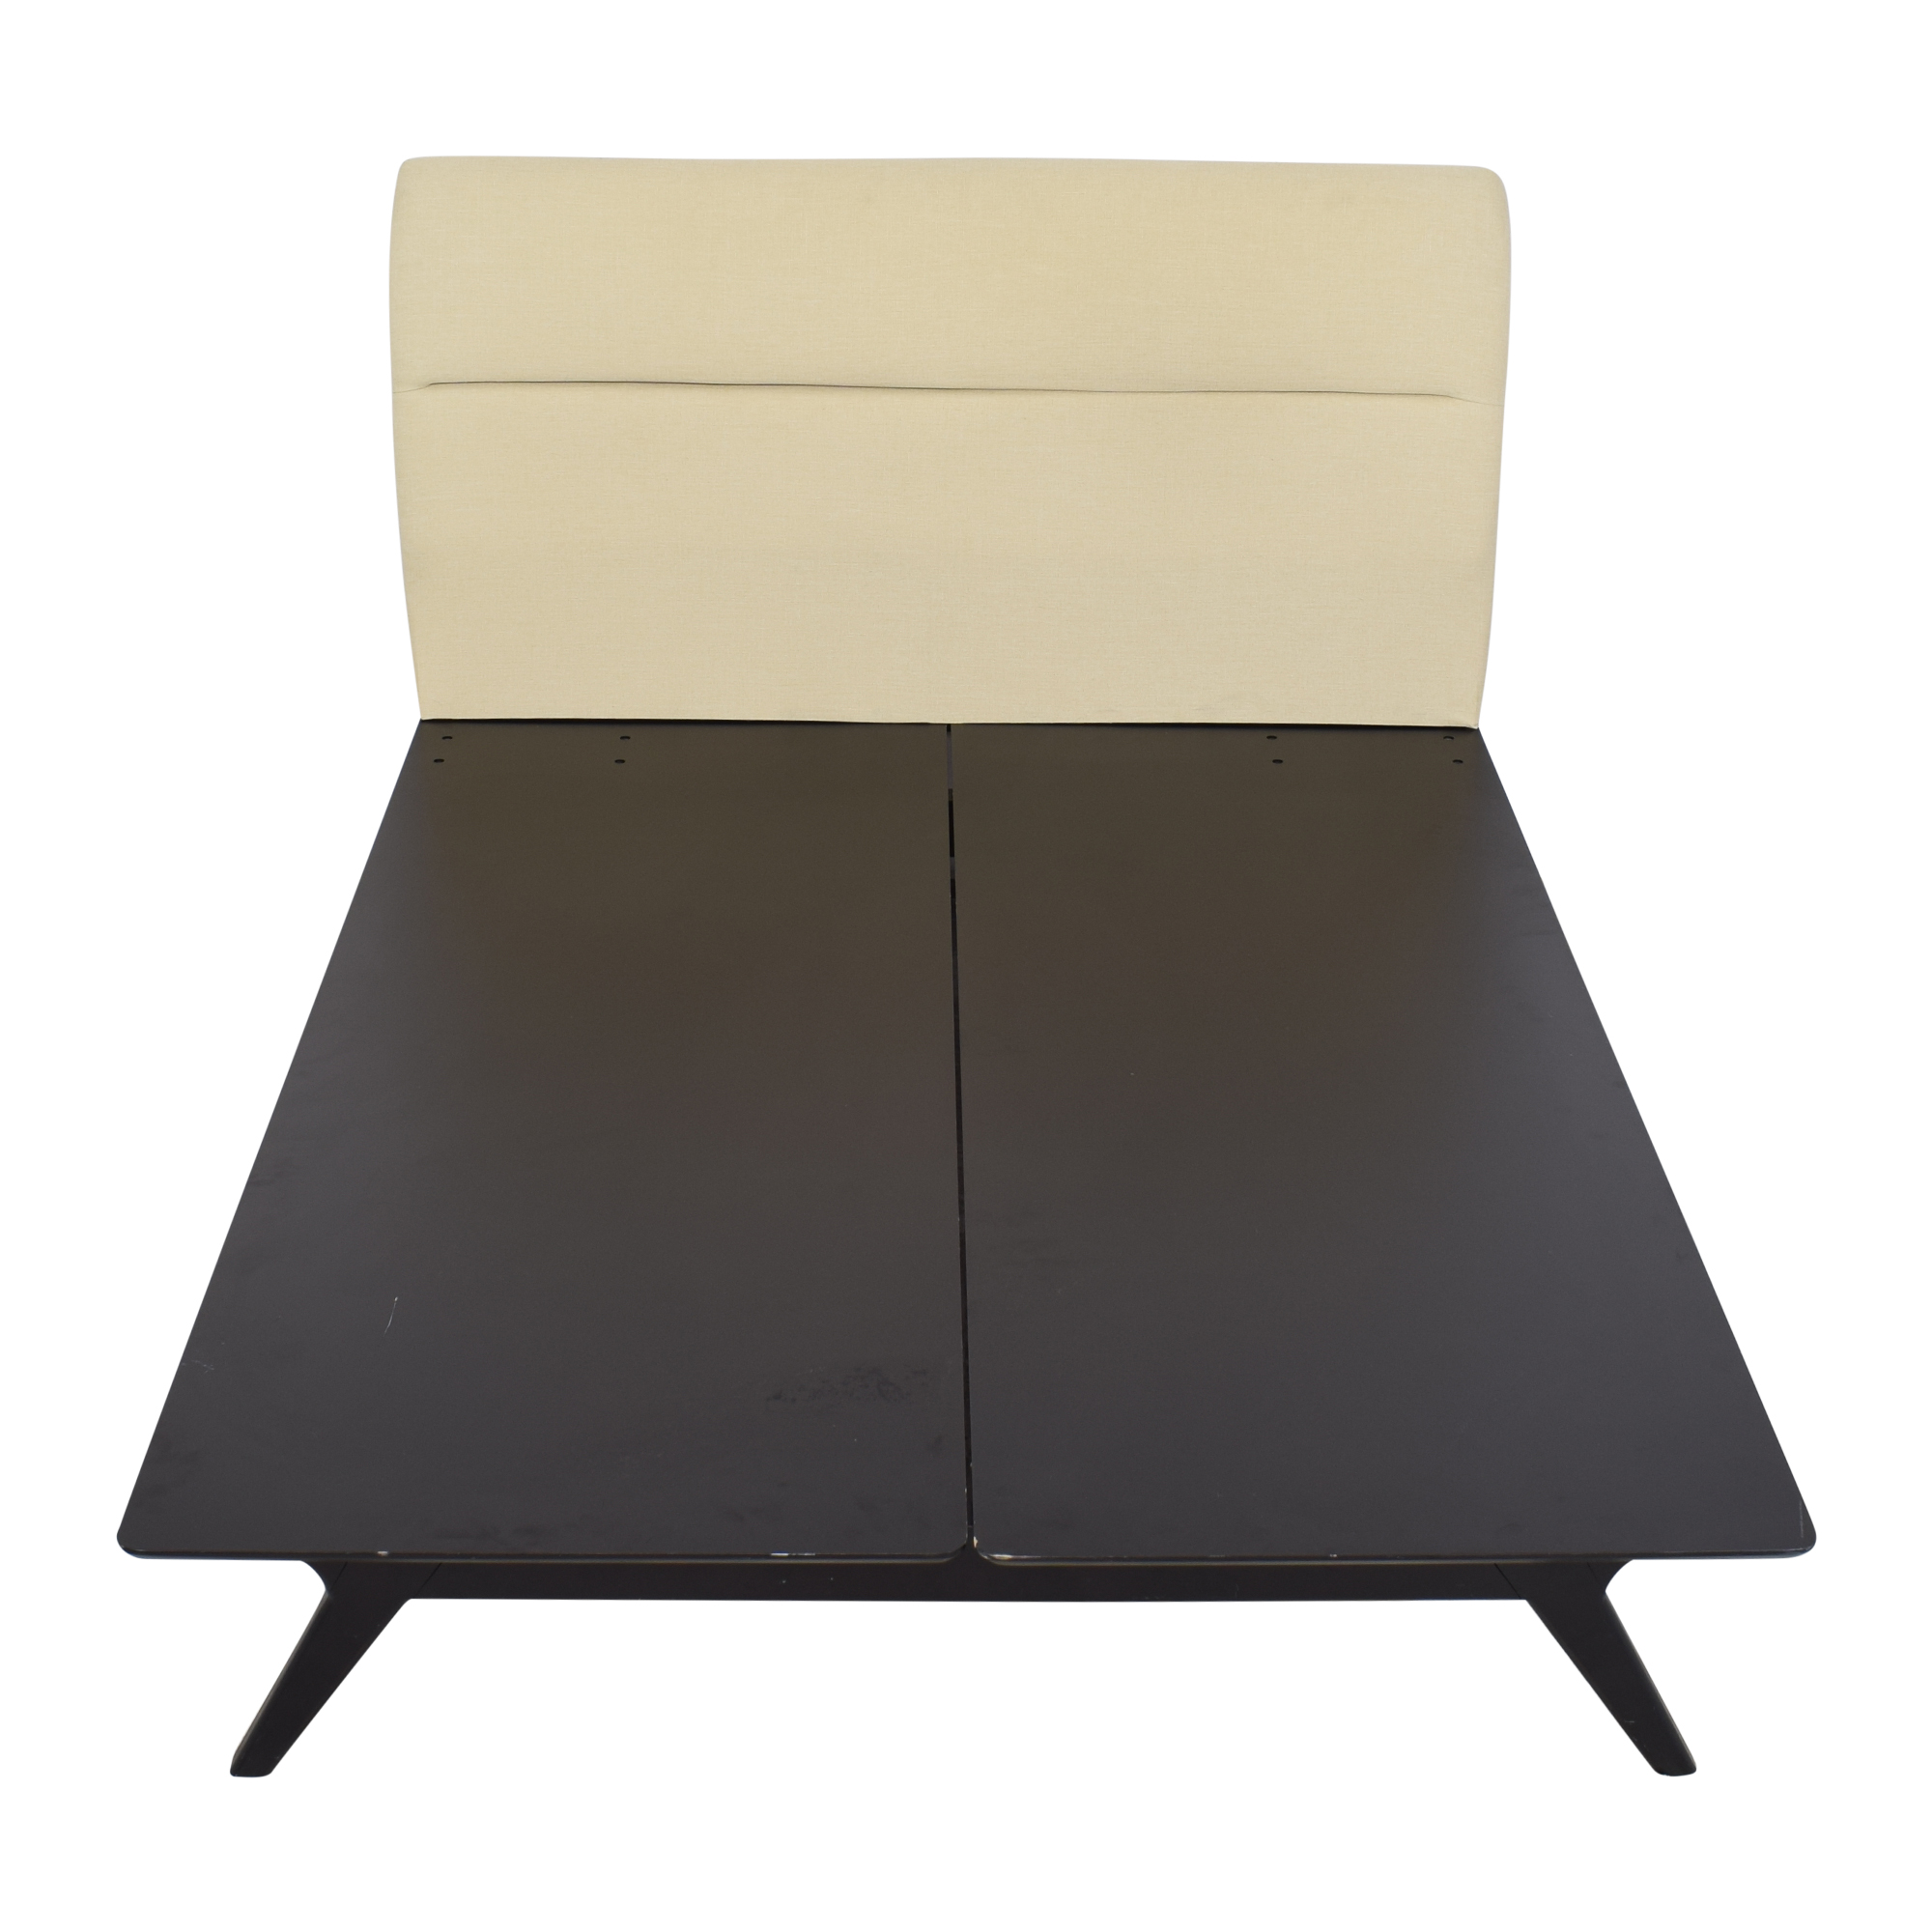 Modway Addison Mid-Century Modern Upholstered Queen Platform Bed Modway